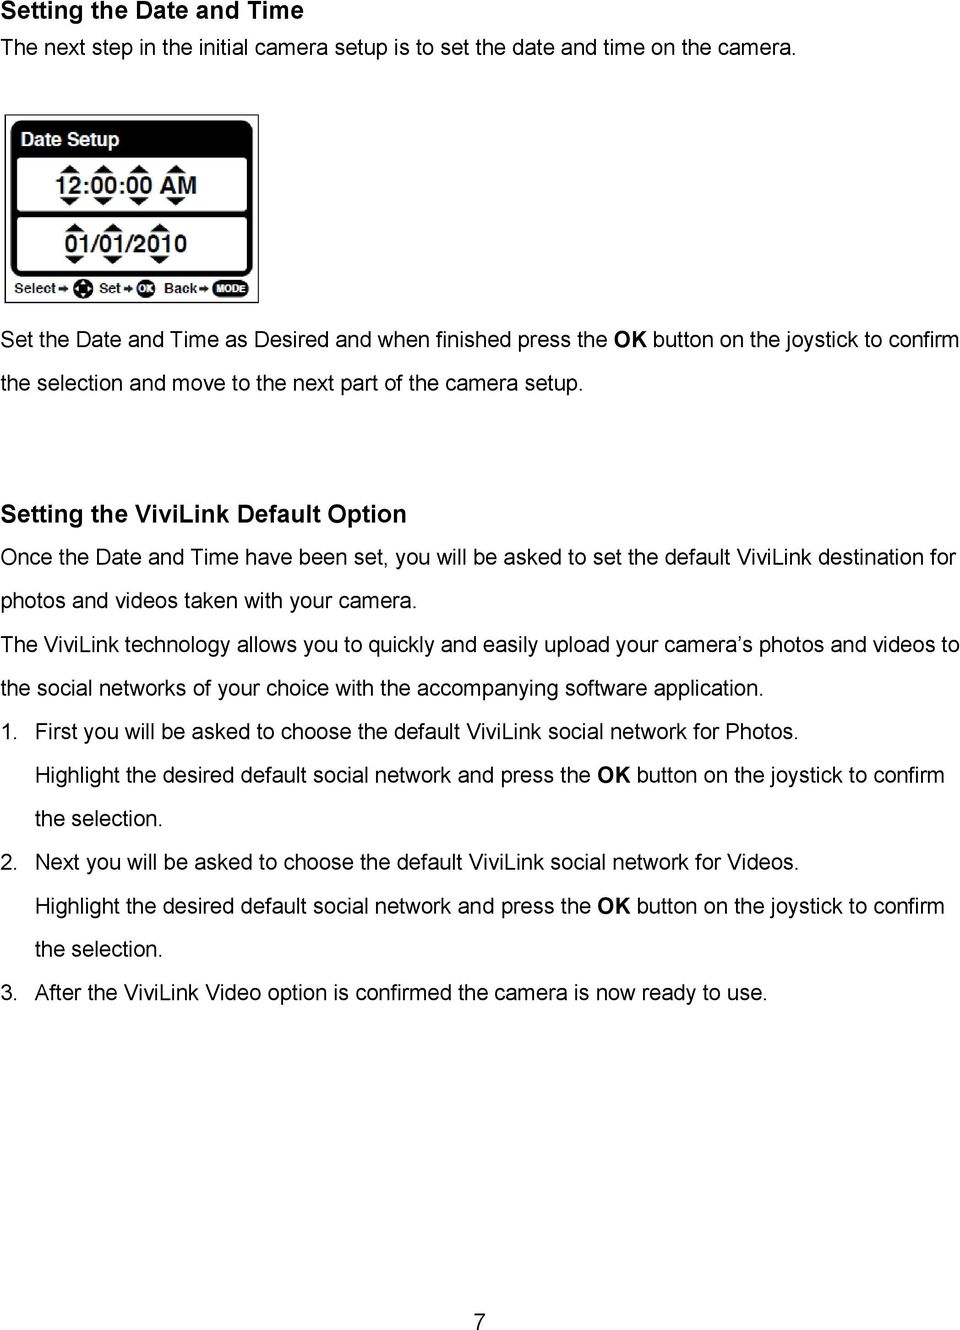 Setting the ViviLink Default Option Once the Date and Time have been set, you will be asked to set the default ViviLink destination for photos and videos taken with your camera.